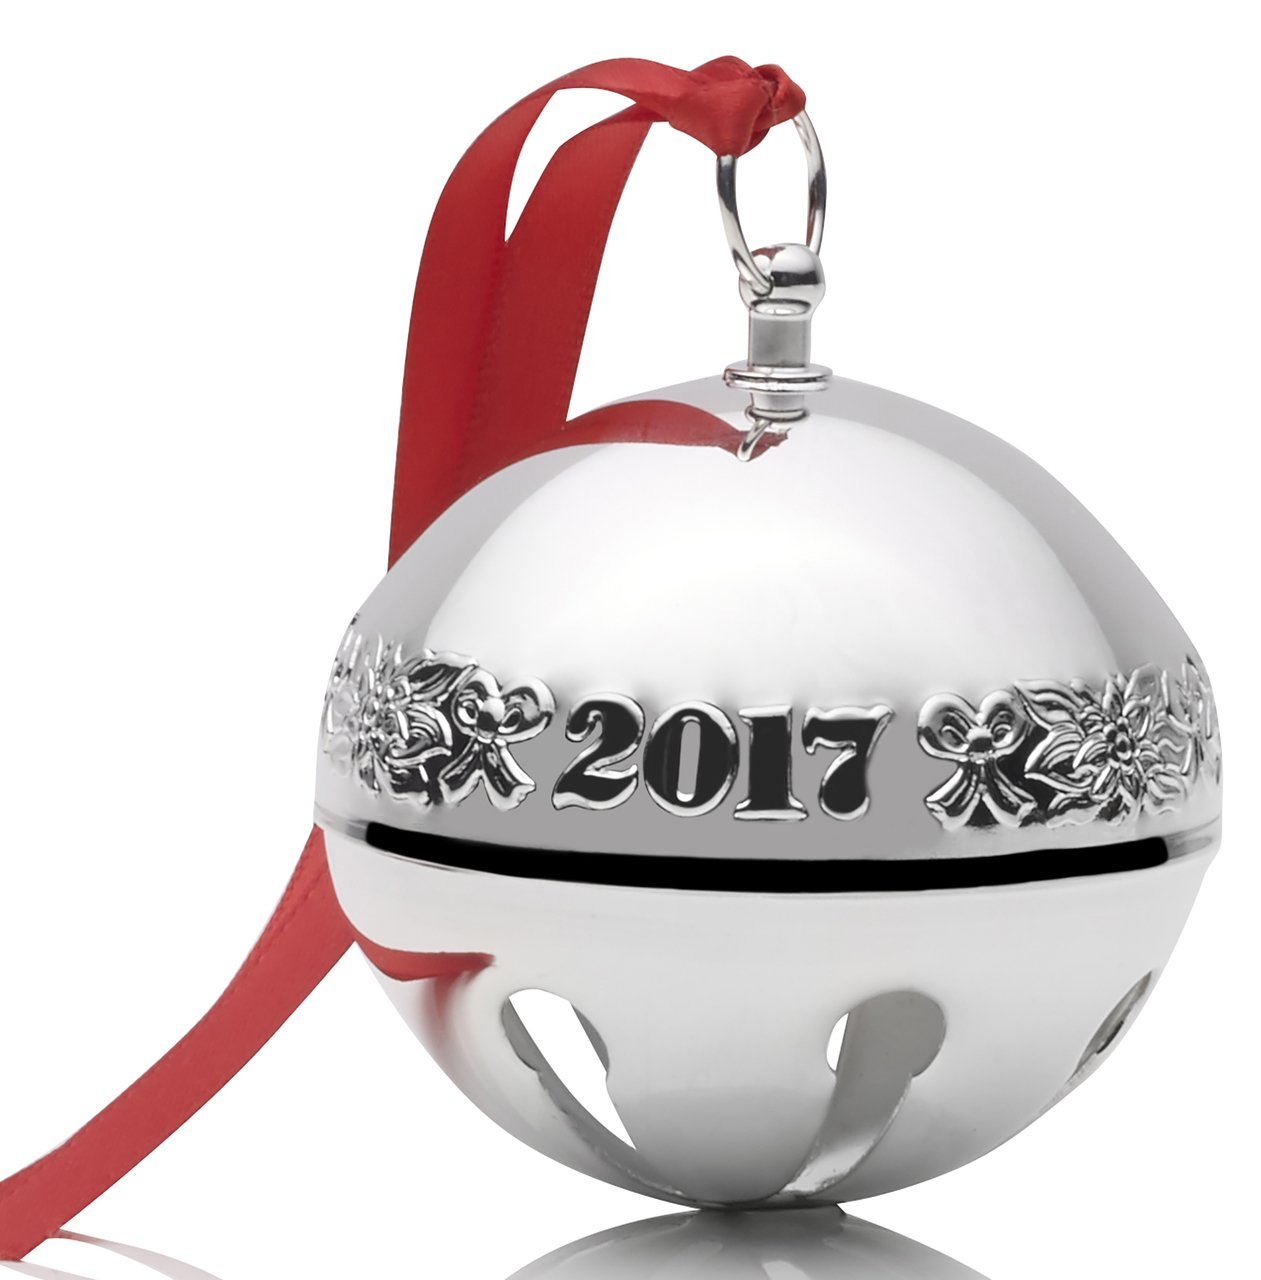 Wallace 2017 Silver-plate Sleigh Bell - 47th Edition (Ribbons & Flowers)